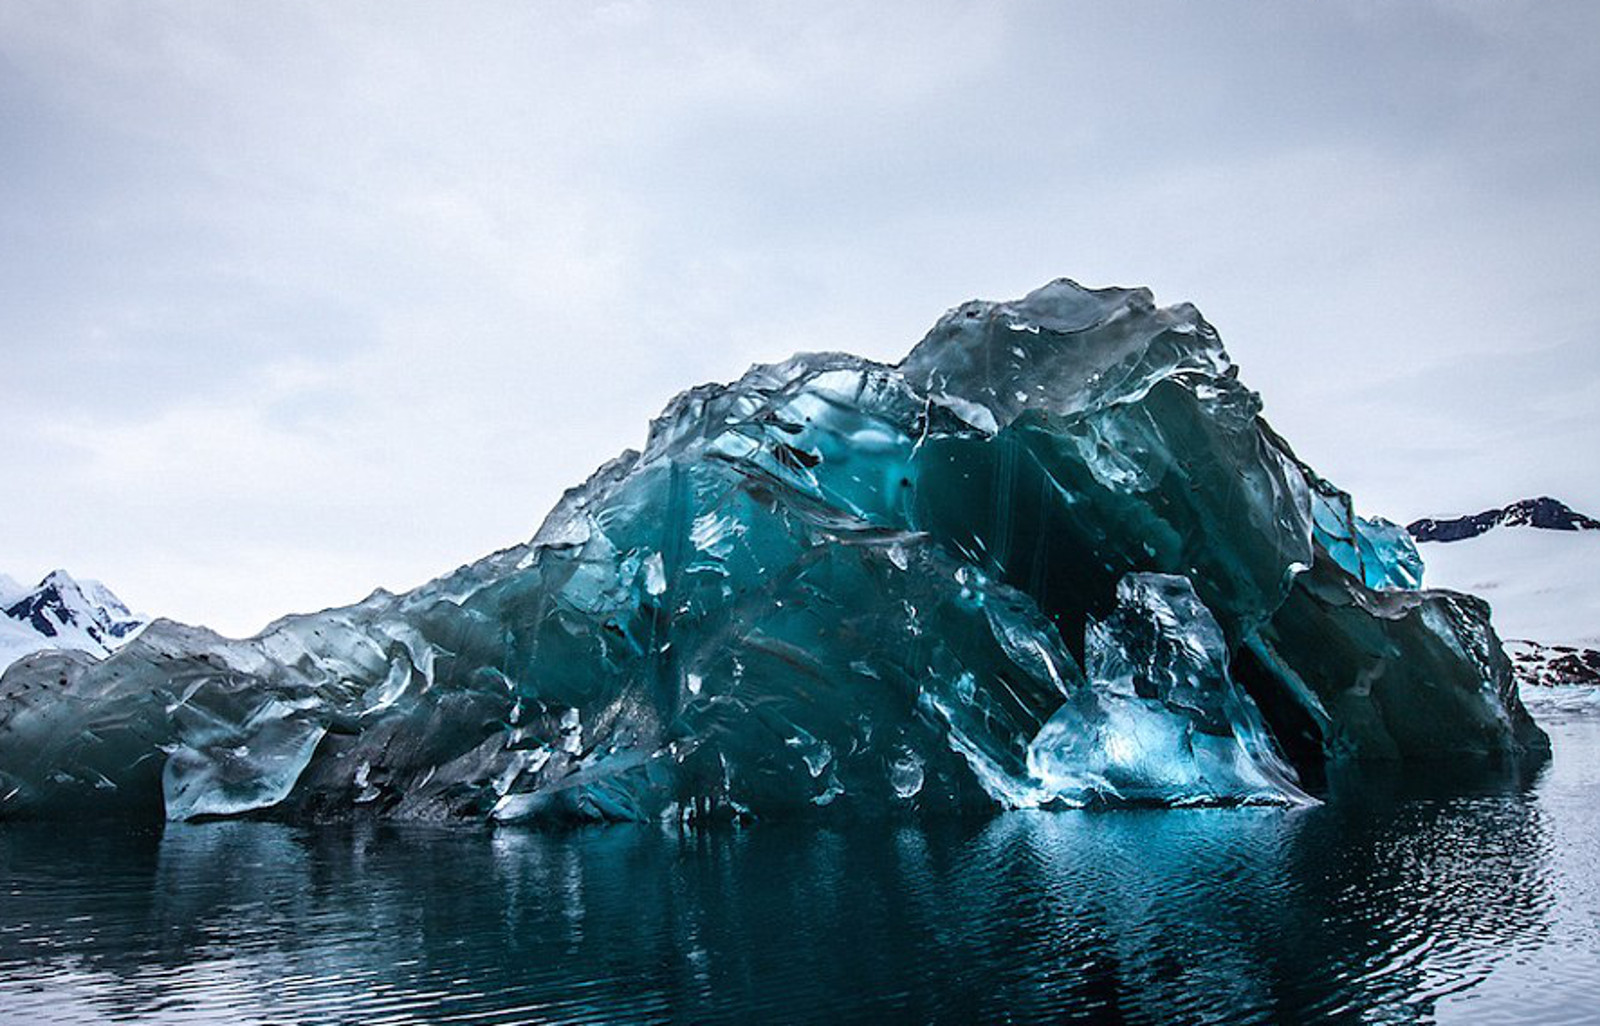 The Rather Shocking Message Behind Stunning Photos of Flipped Icebergs